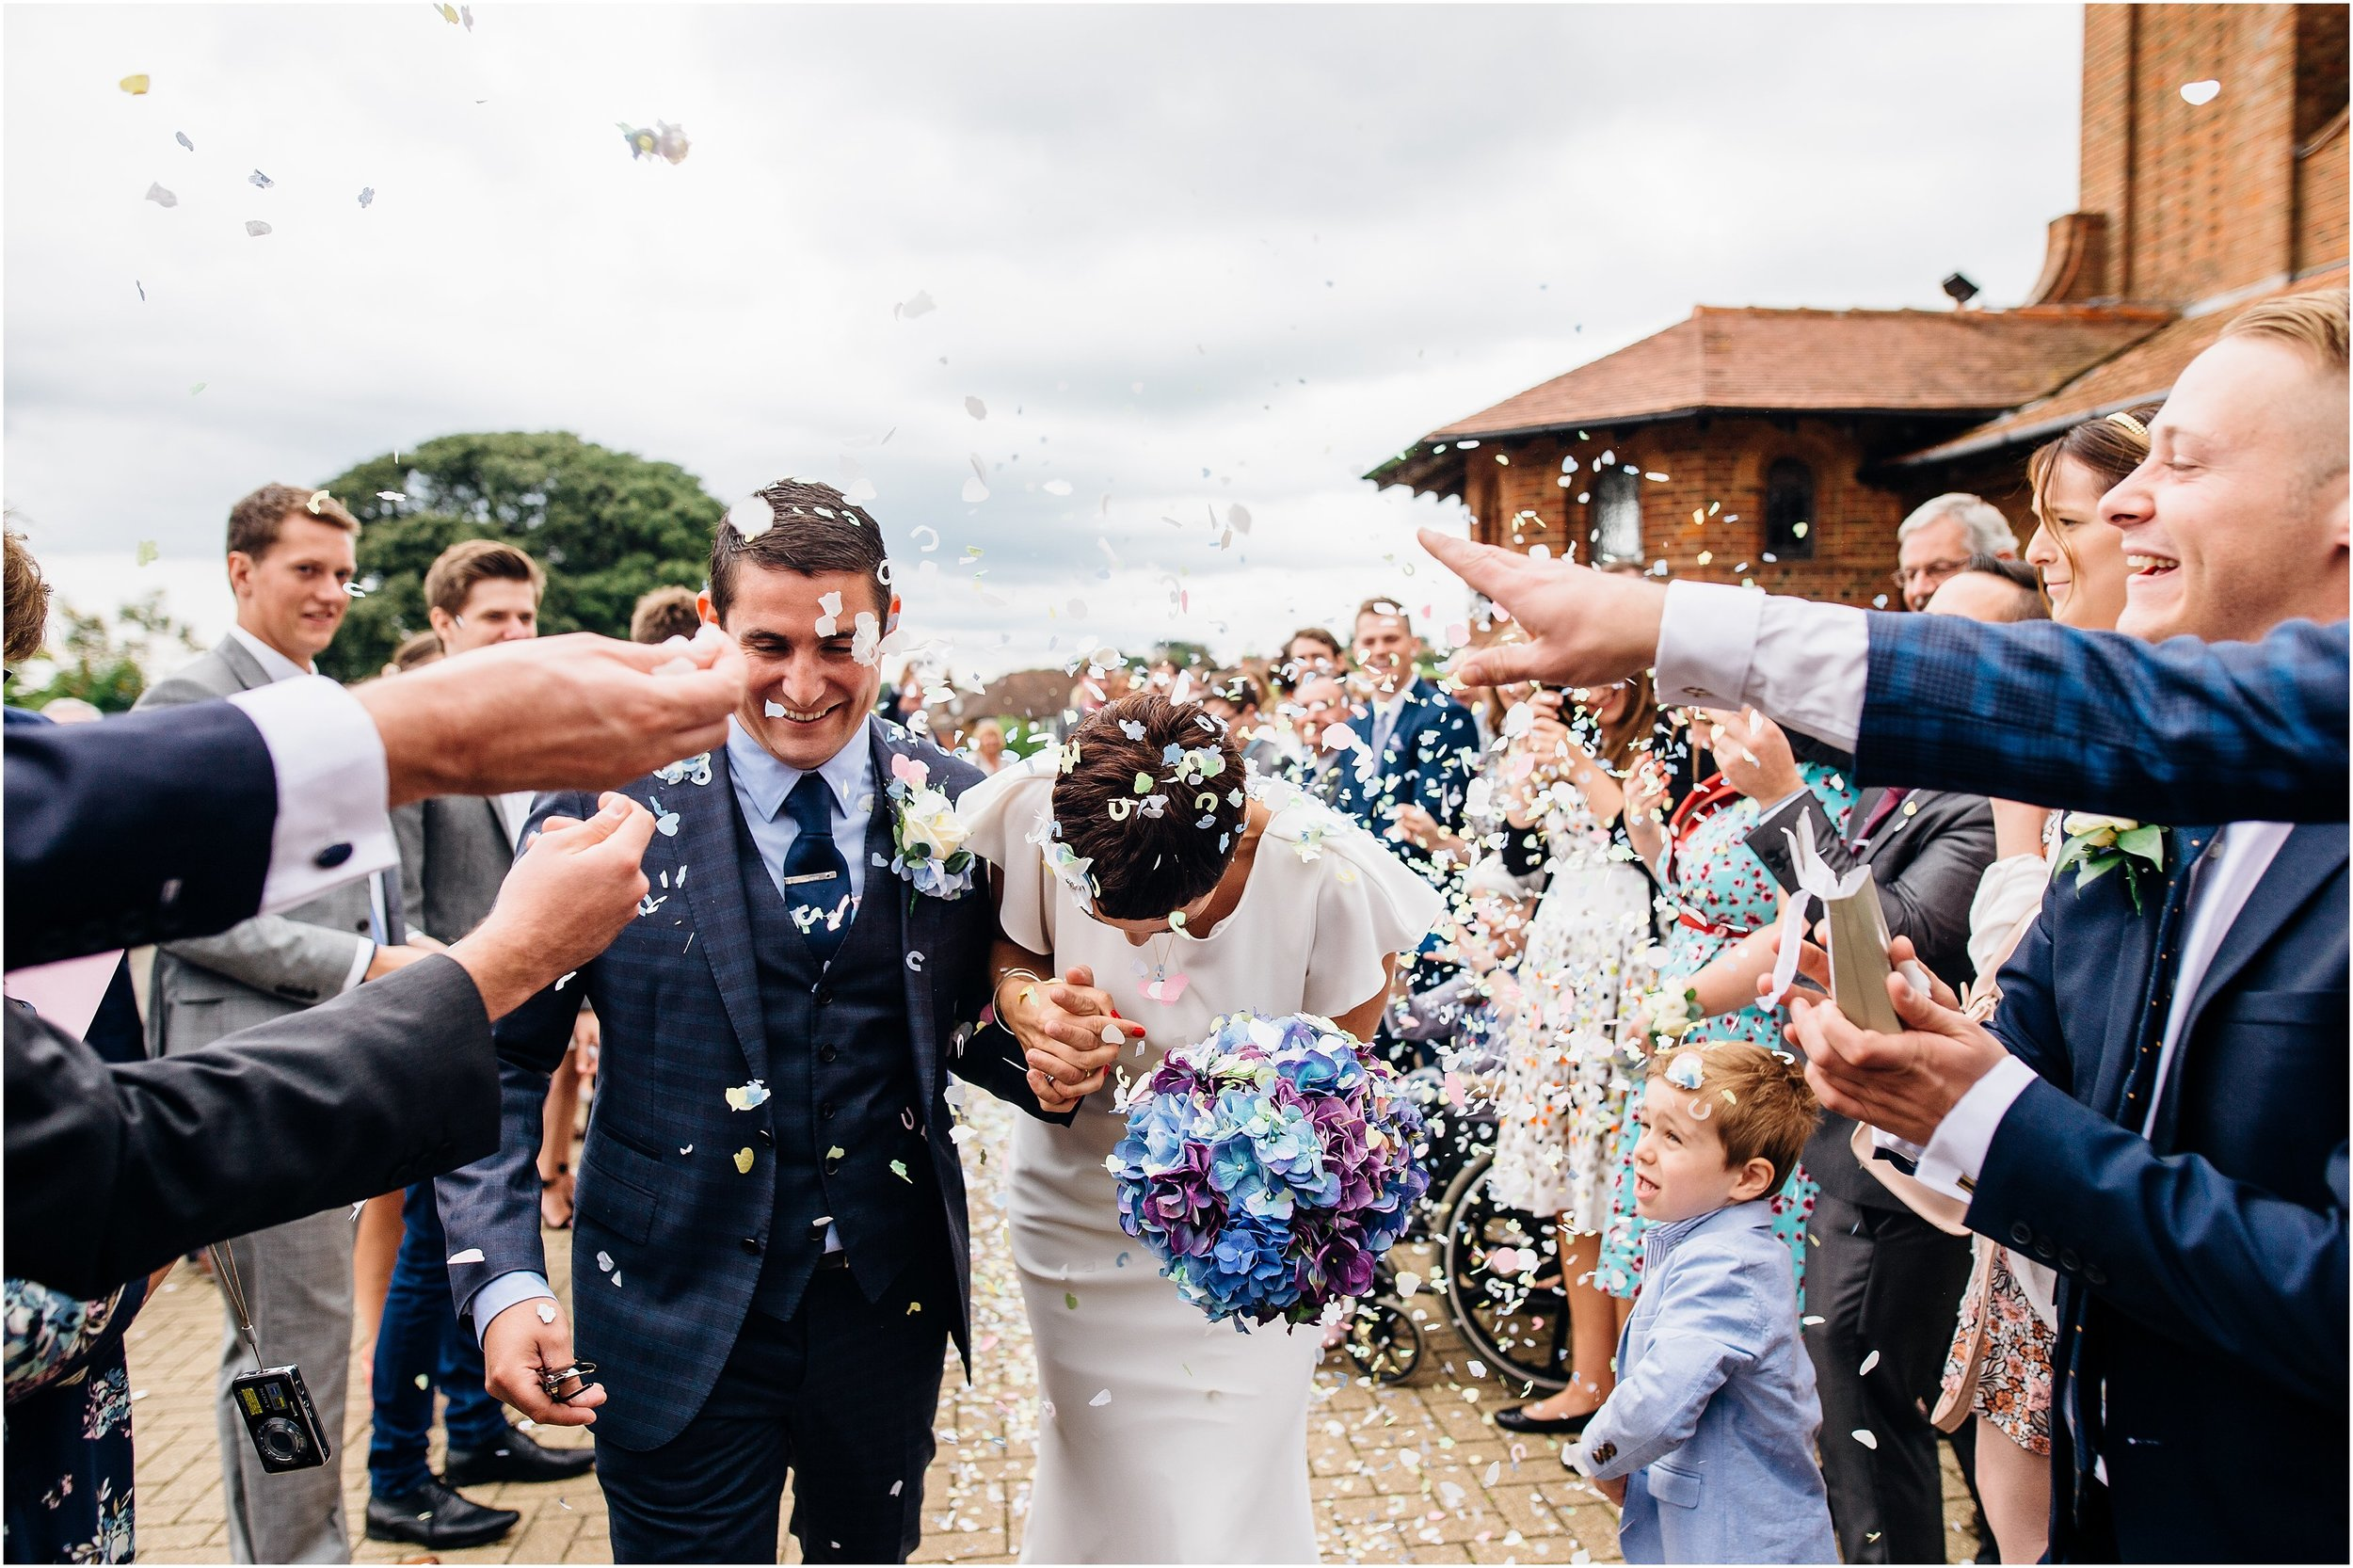 ALTERNATIVE STYLISH UK BARN WEDDING-ISLE OF WIGHT_0040.jpg